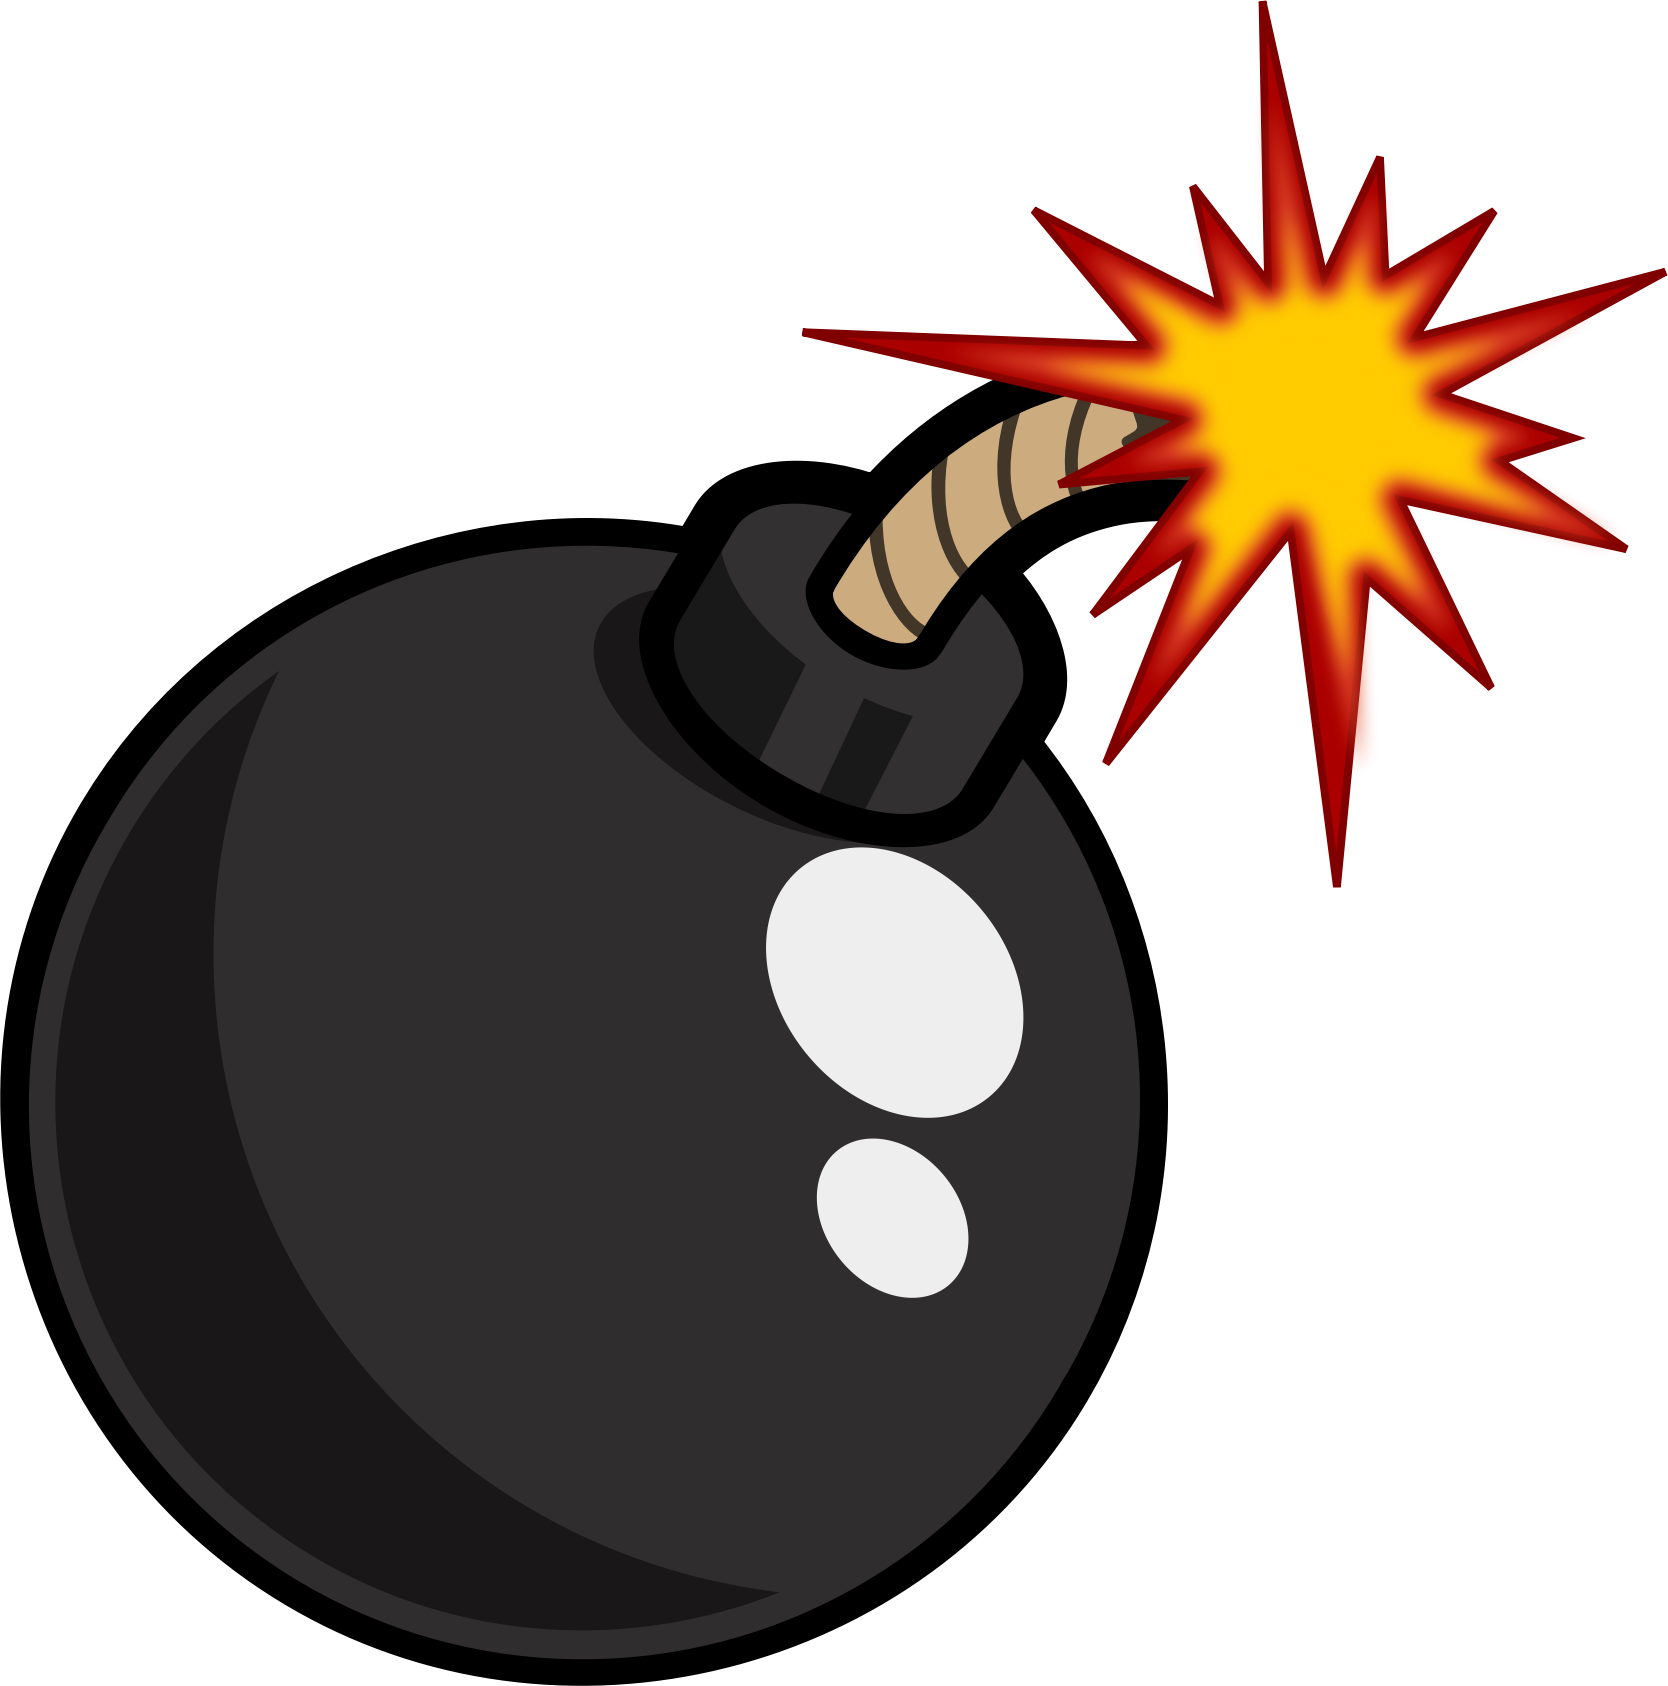 Bomb clipart link. Black cartoon icons png